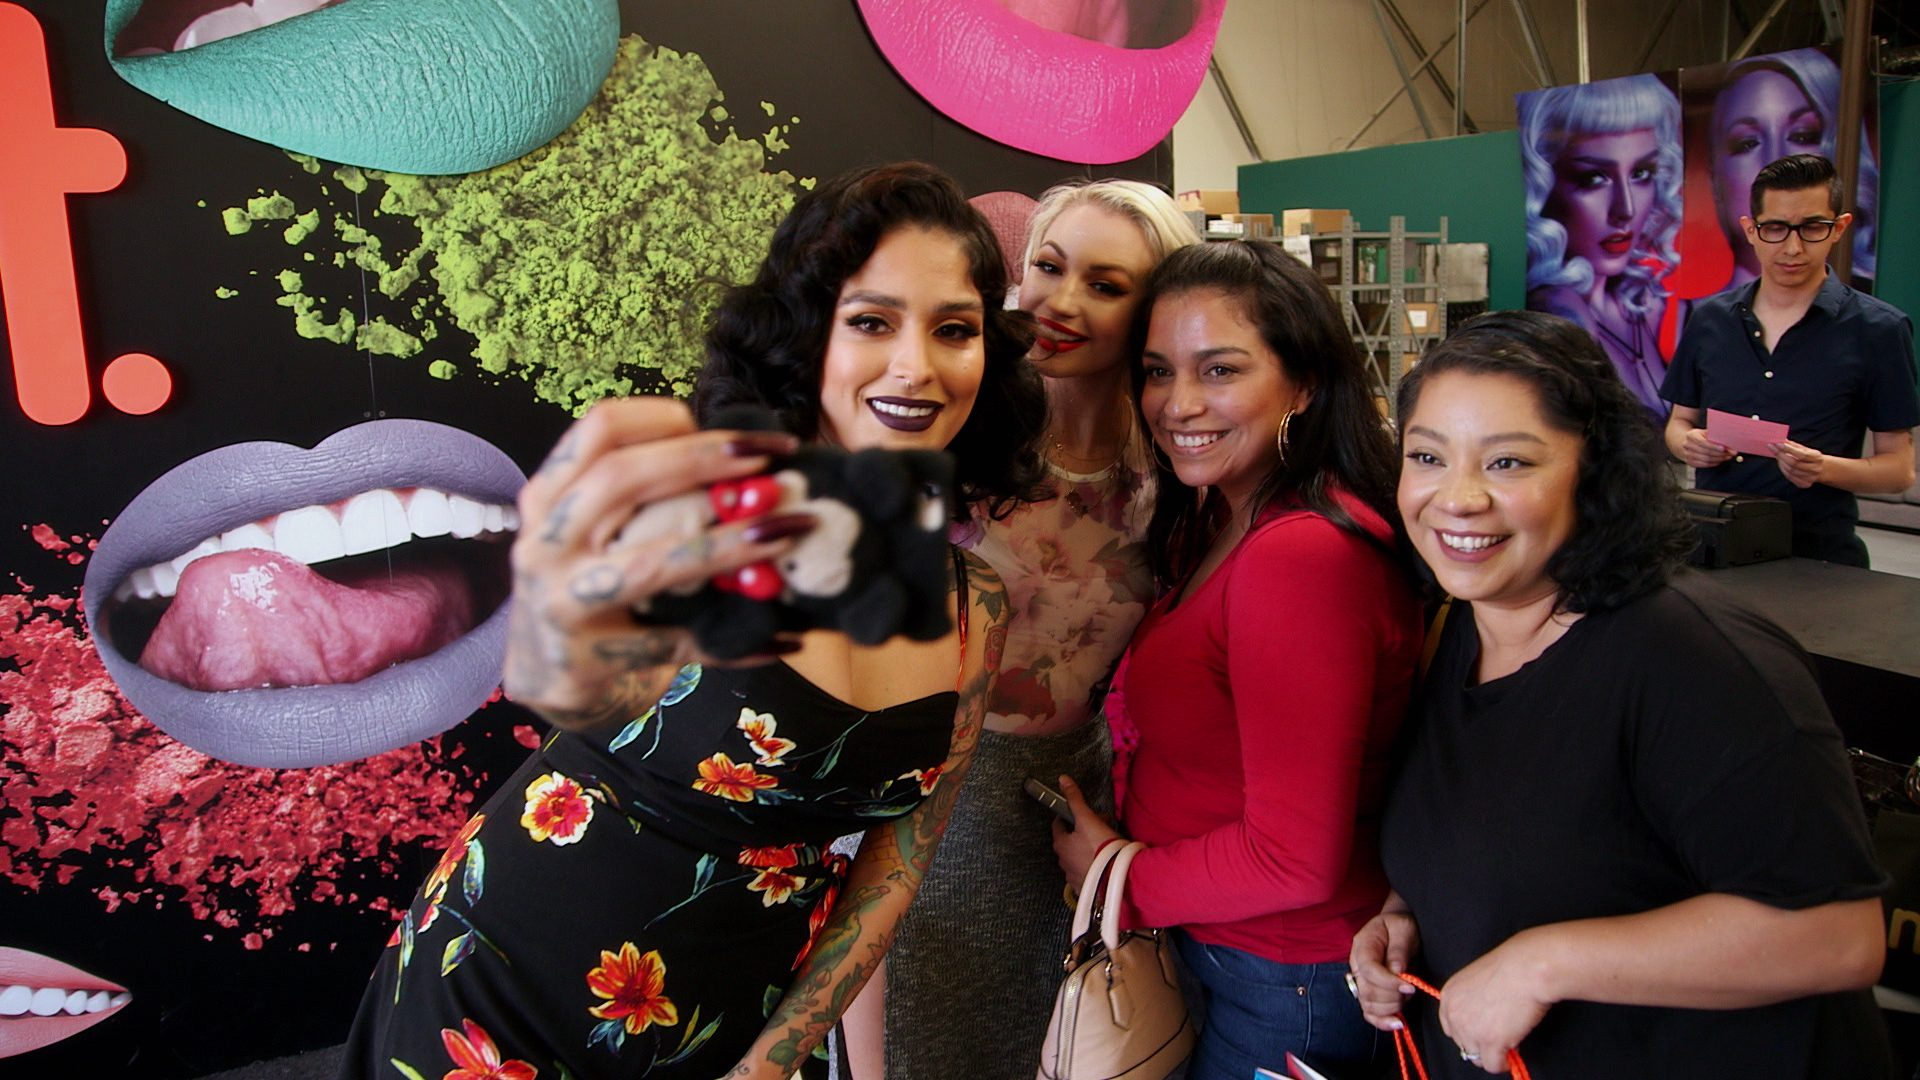 Lora Arellano, Dana Bomar, Co-Founders, CEOs, Makeup Besties, Beauty Business Partners, Female Entrepreneurs, Melt Cosmetics, Selfie With Fans At BBQ Sale, Lipstick Empire, Stage 13 Original, stage13network